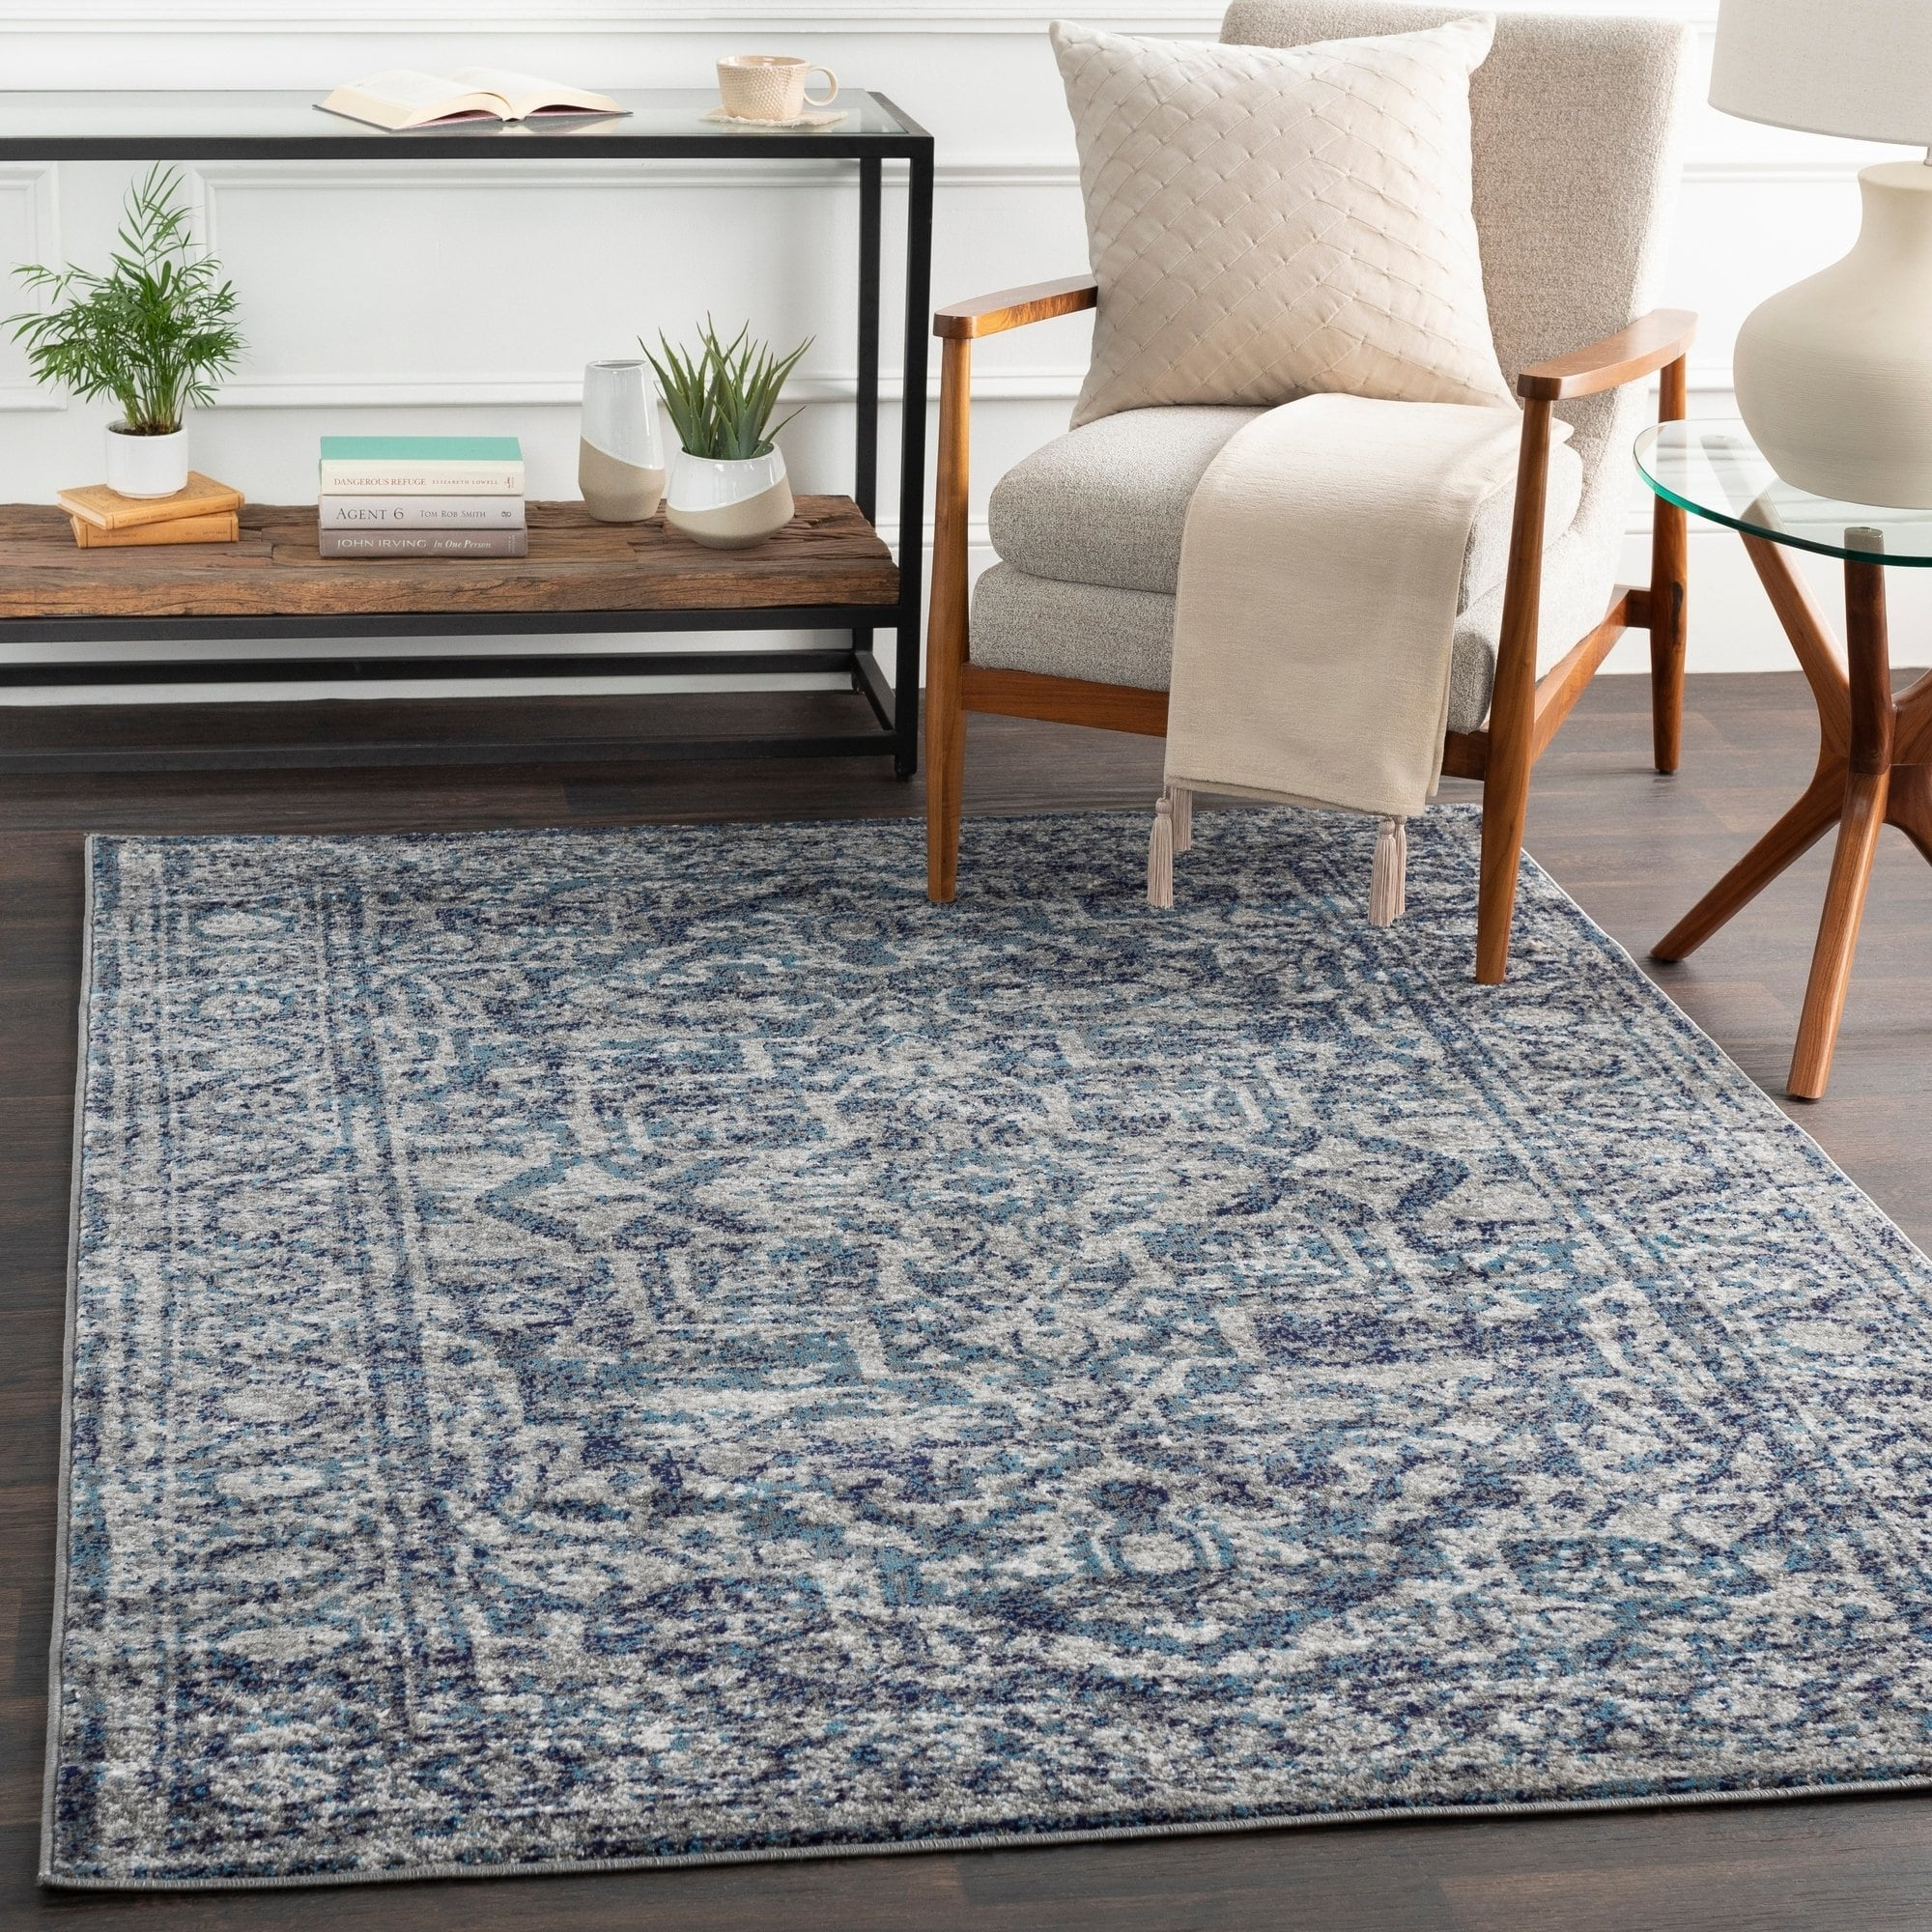 Picture of: Vintage Navy Blue Gray White Area Rug Modern Rugs And Decor